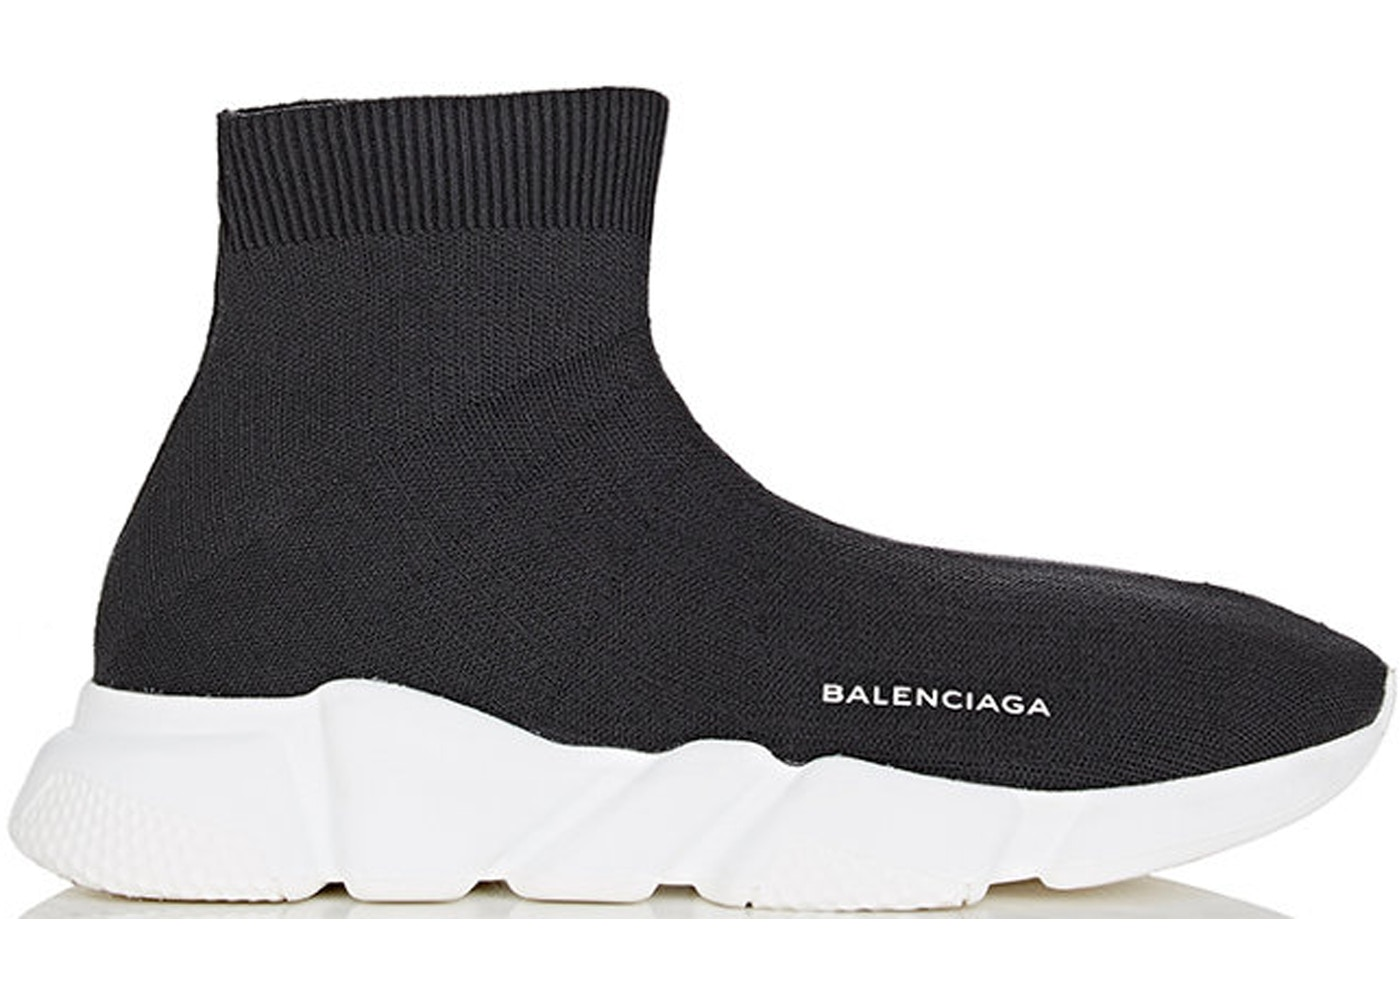 Balenciaga Speed Trainer Black White - 458653-W05G0-1000 484c7e42a